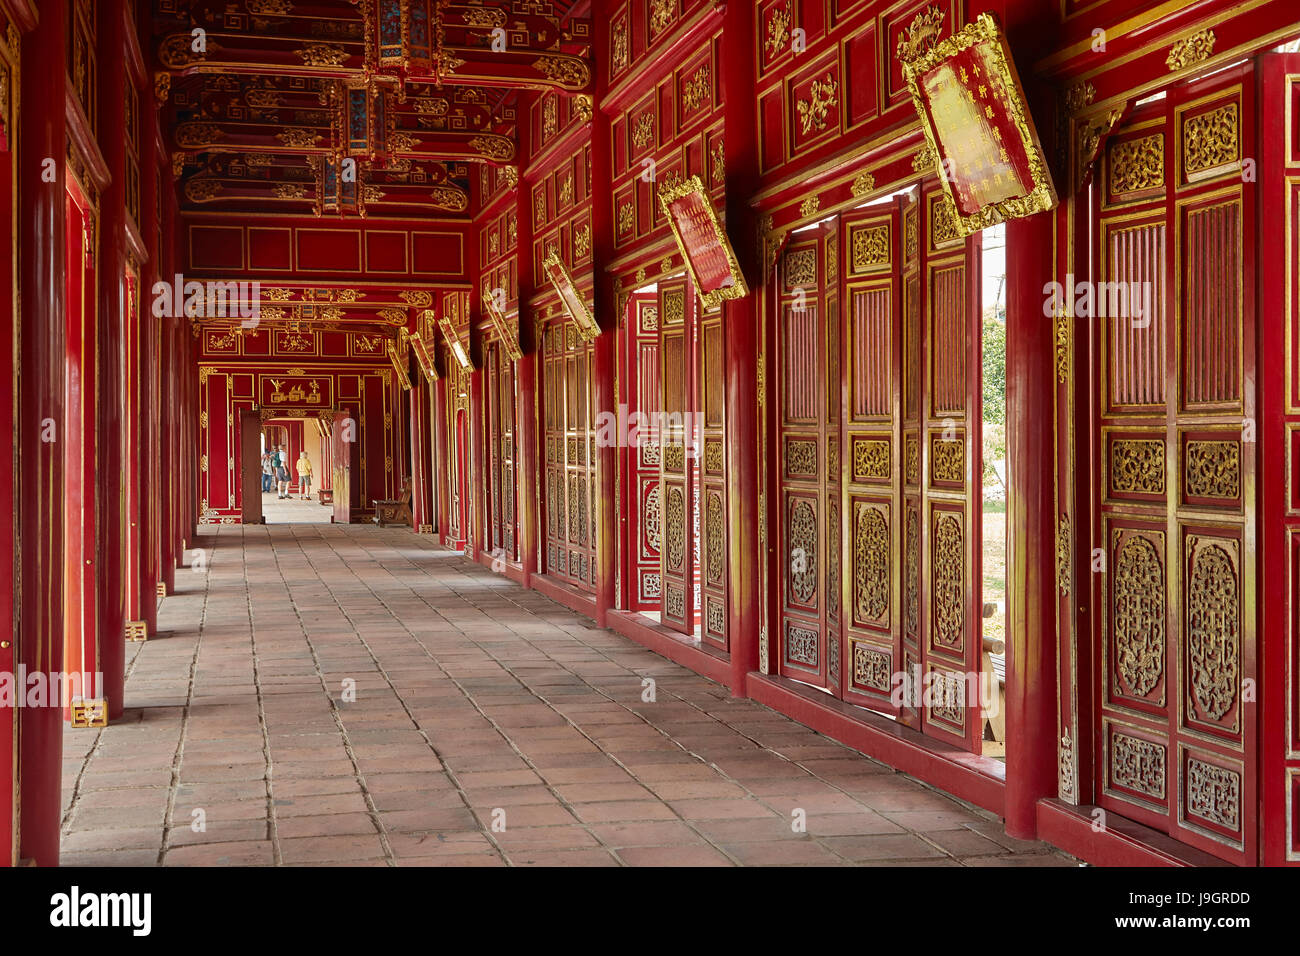 Corridor and red doors in the Forbidden Purple City, historic Hue Citadel (Imperial City), Hue, North Central Coast, - Stock Image